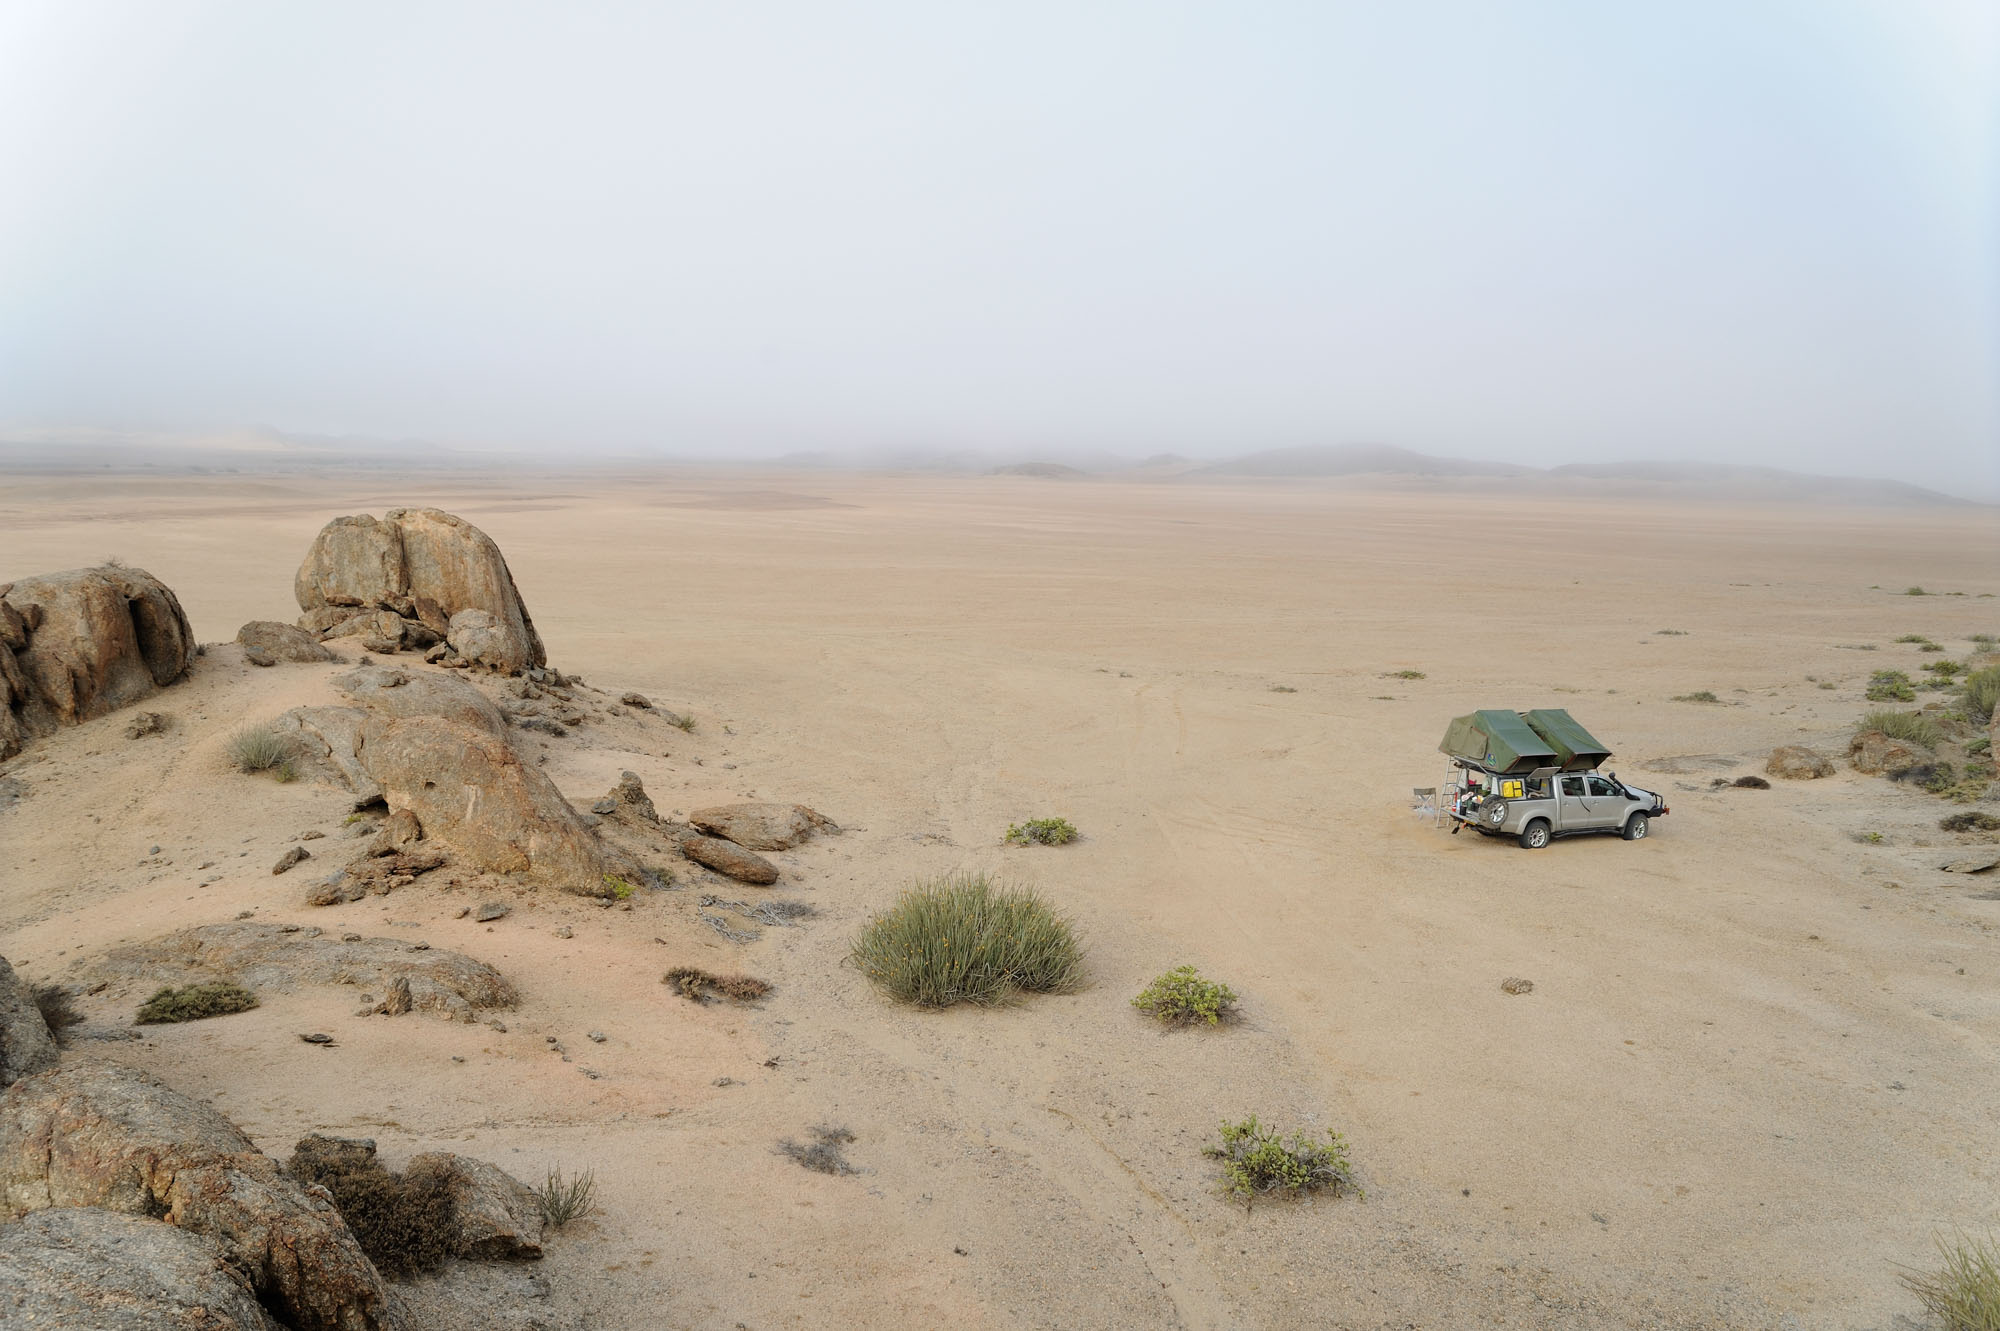 Thijs Heslenfeld in Namibia